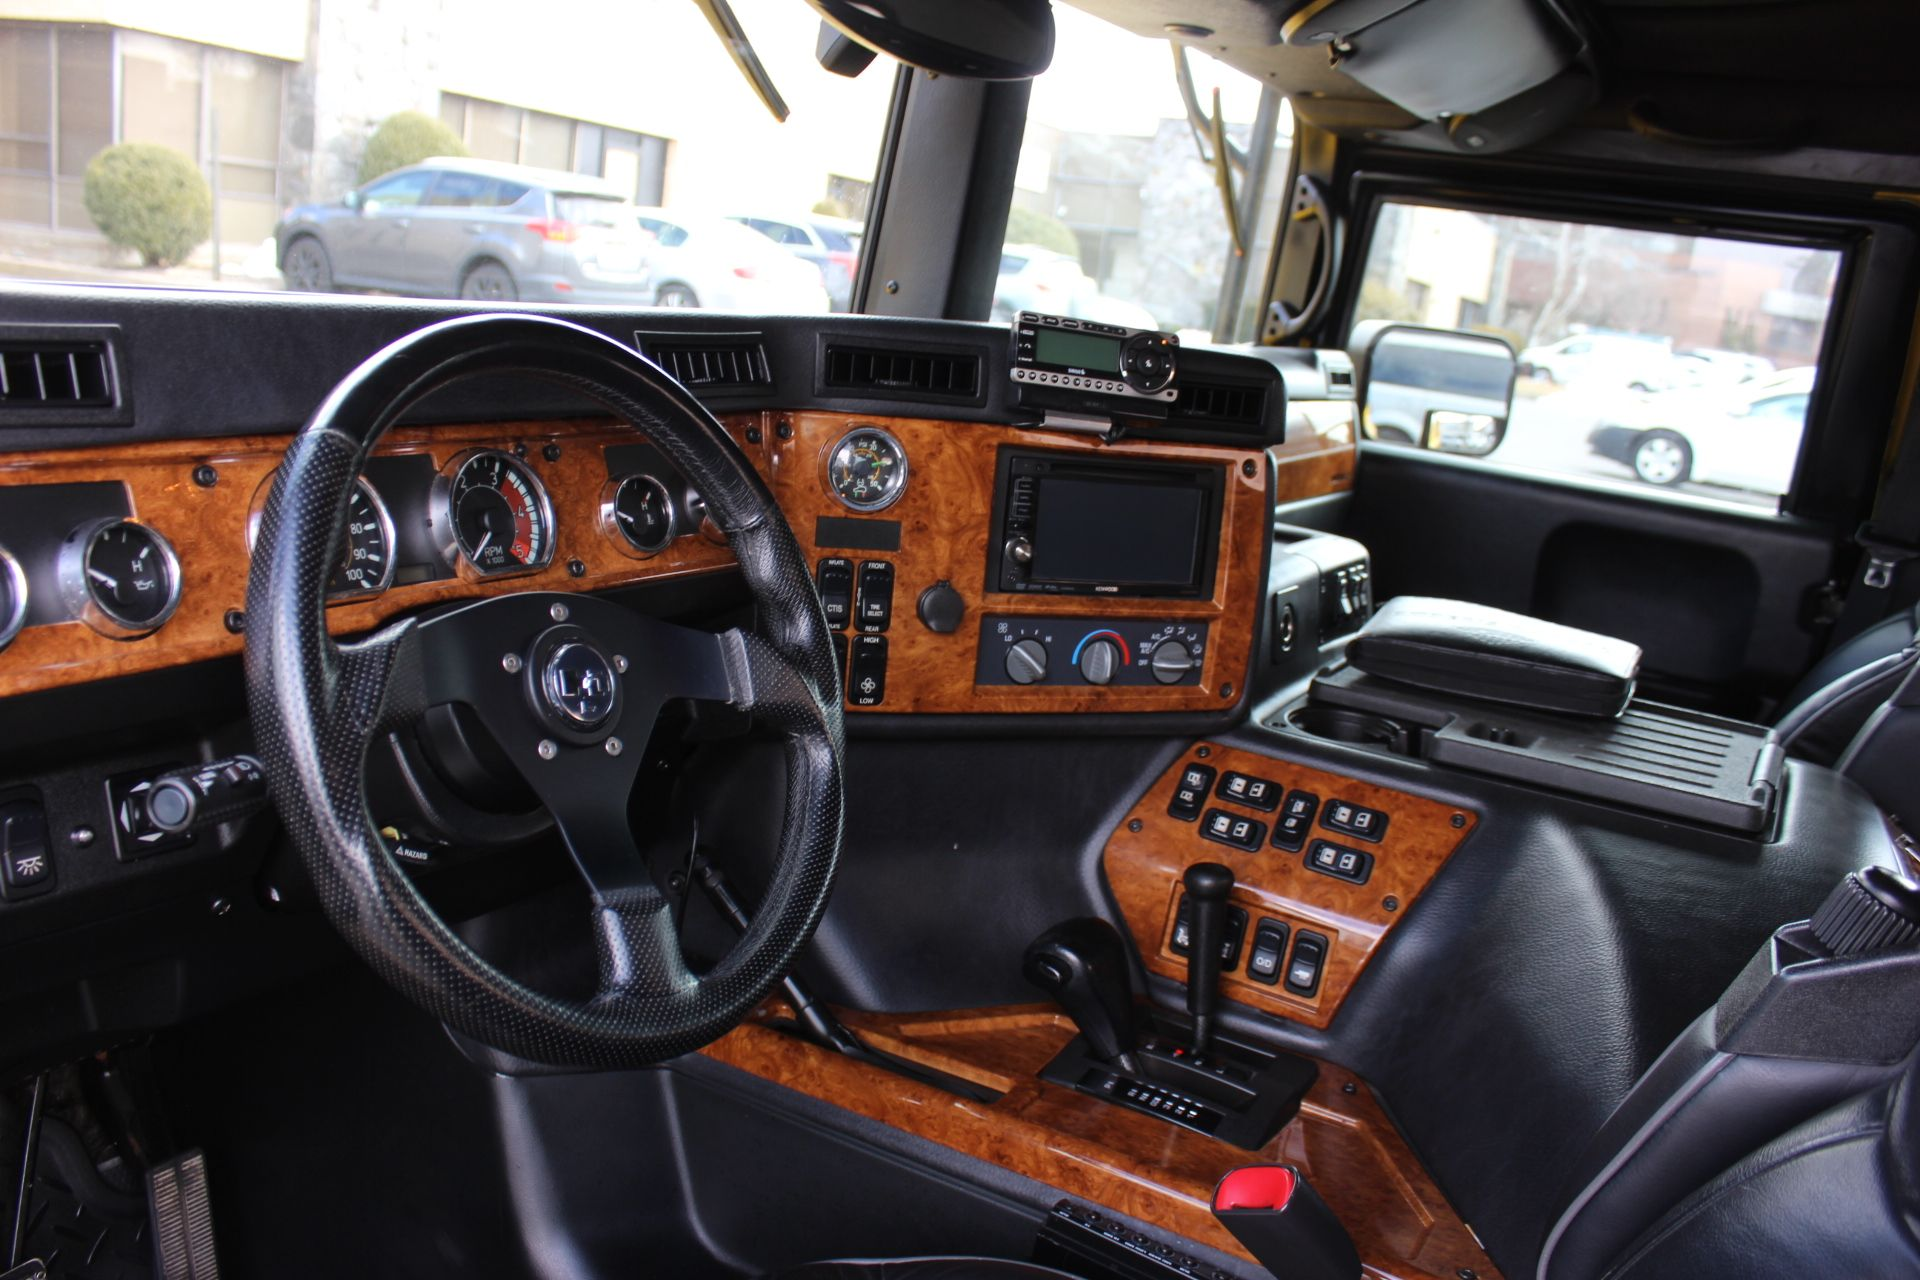 Dashboard 2006 Hummer H1 Alpha Open Top Powered By A 6 6l Duramax Turbo Diesel V8 With 5 Speed A T Hummer H1 Duramax Turbo Hummer H1 Alpha